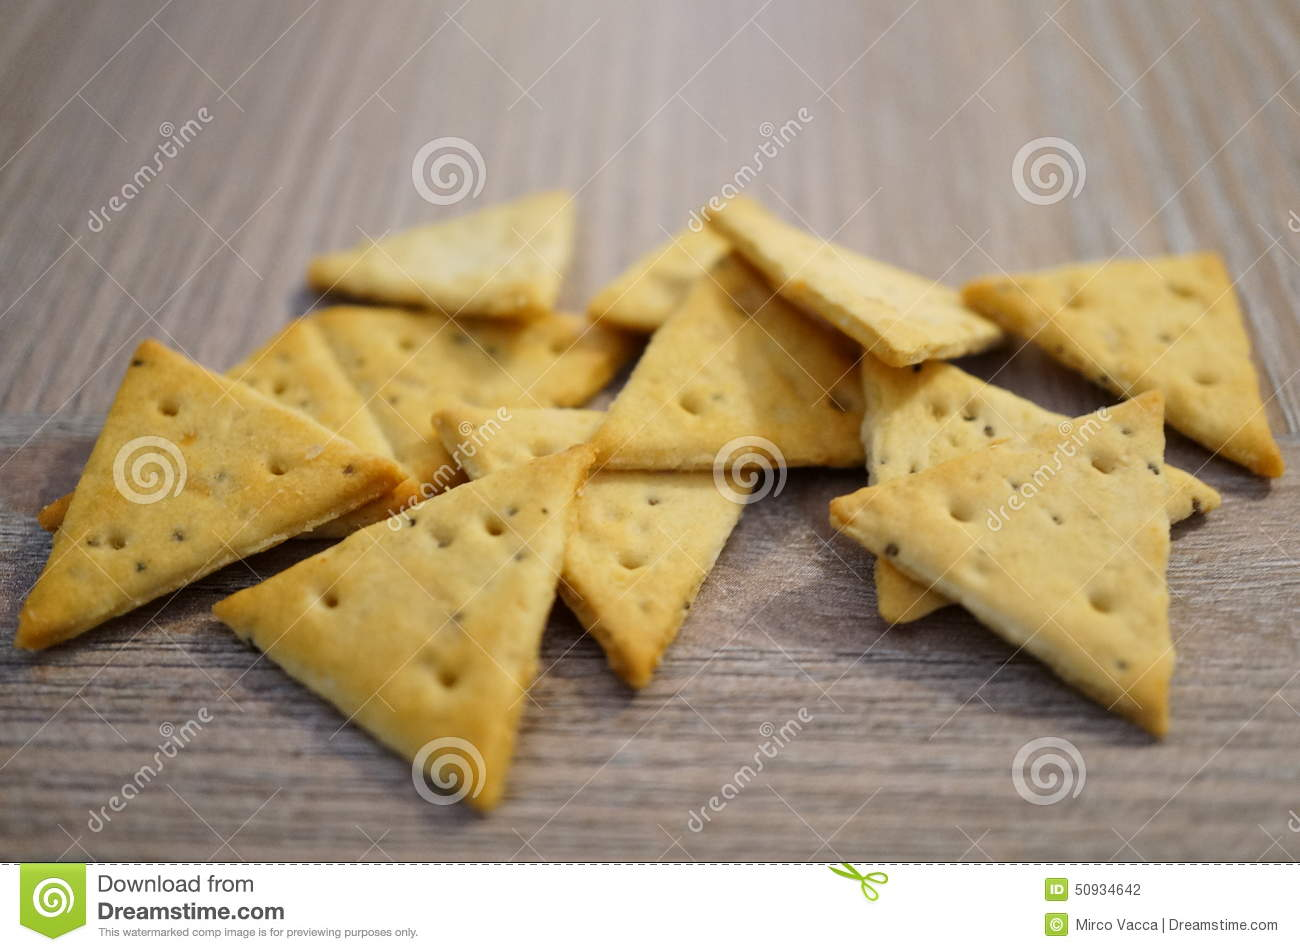 triangle-crackers-group-wood-50934642.jp